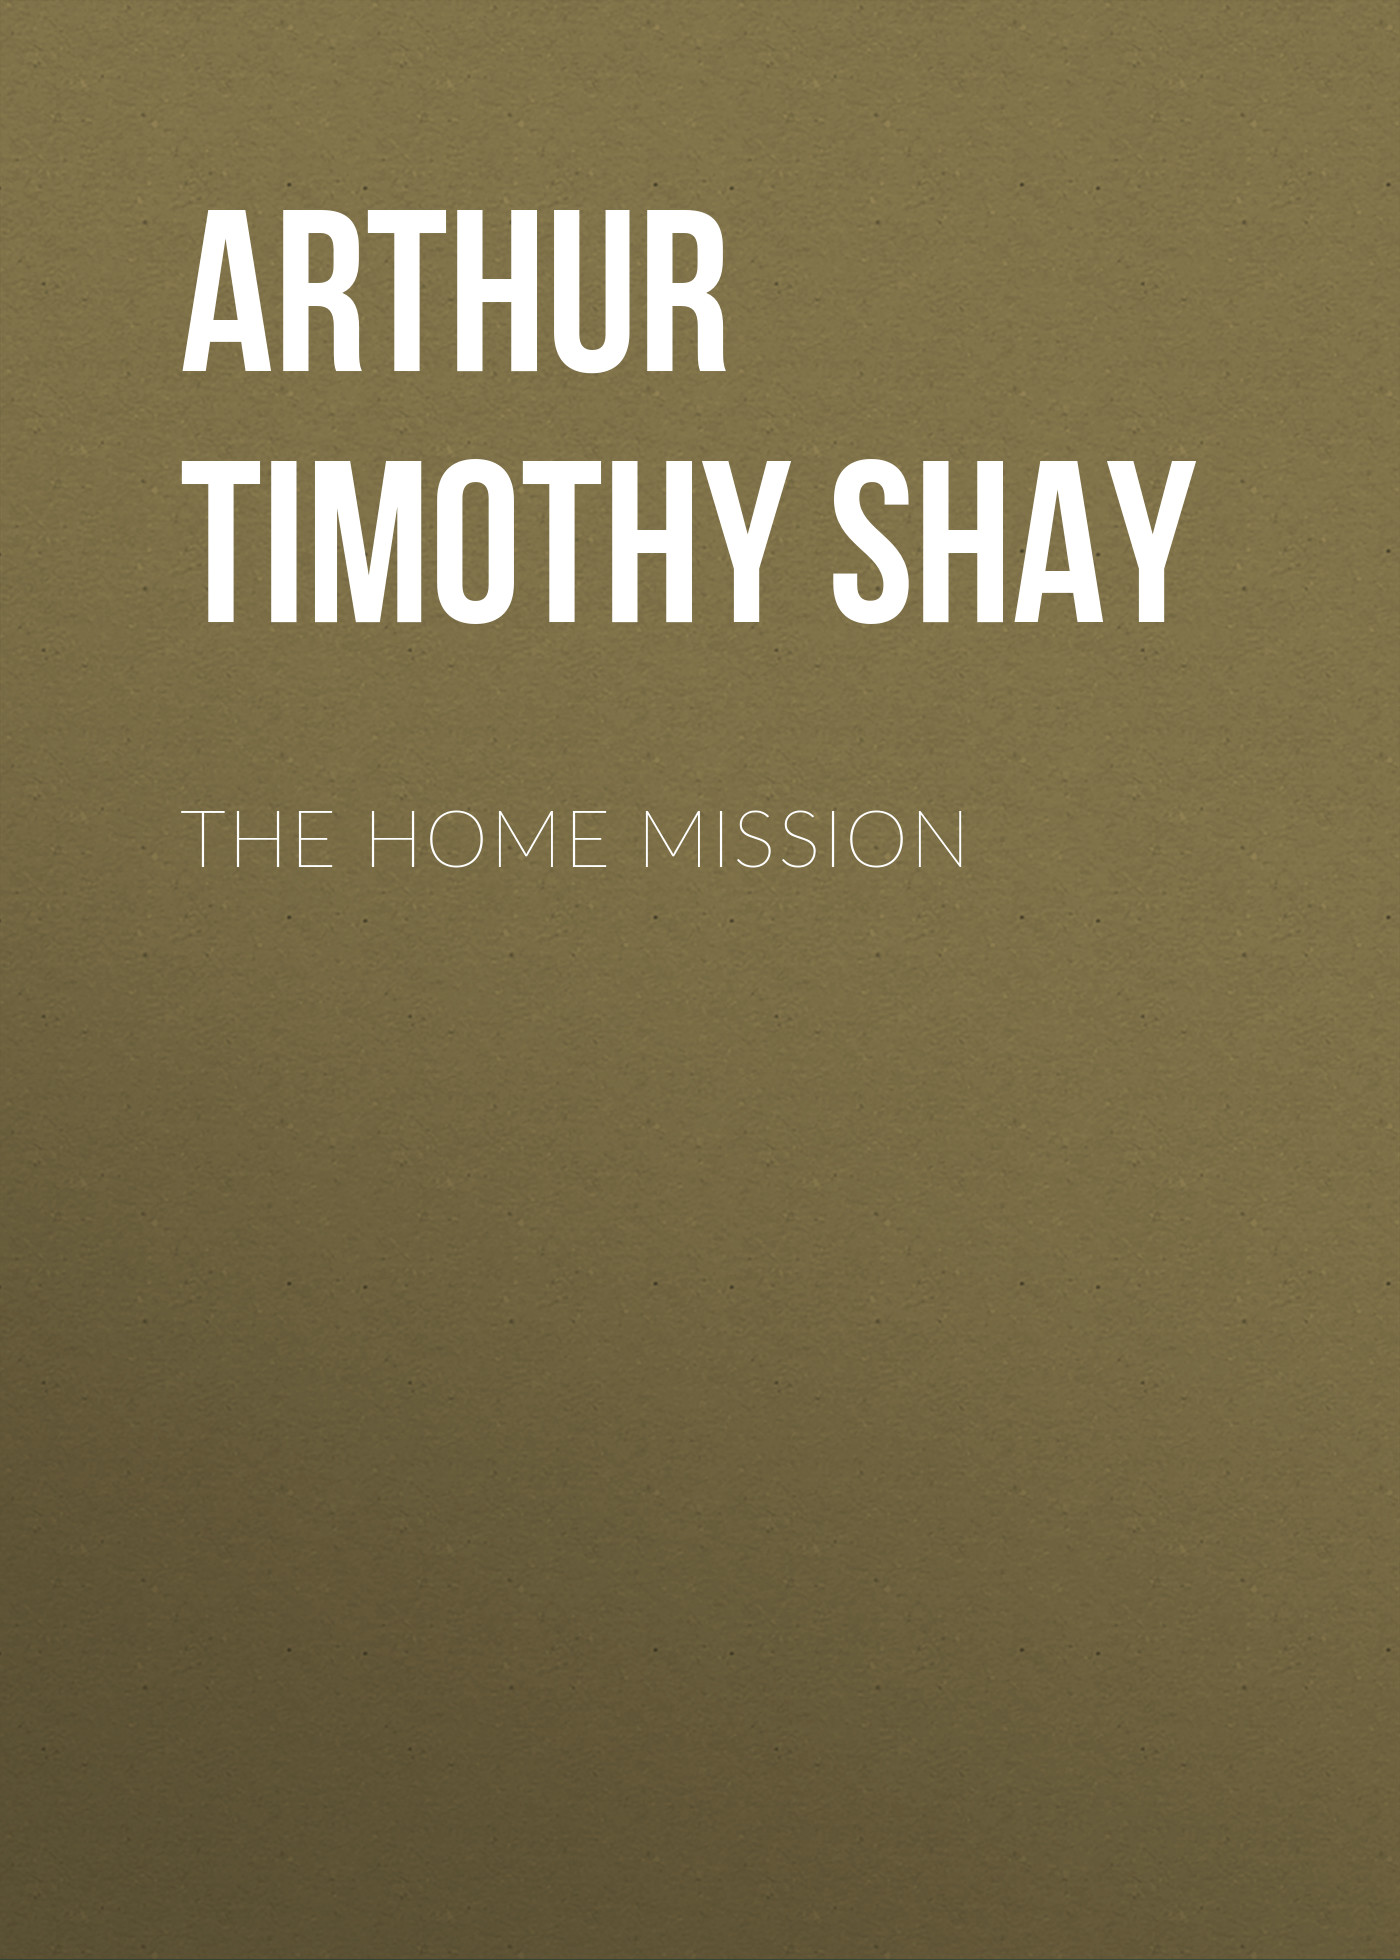 Arthur Timothy Shay The Home Mission